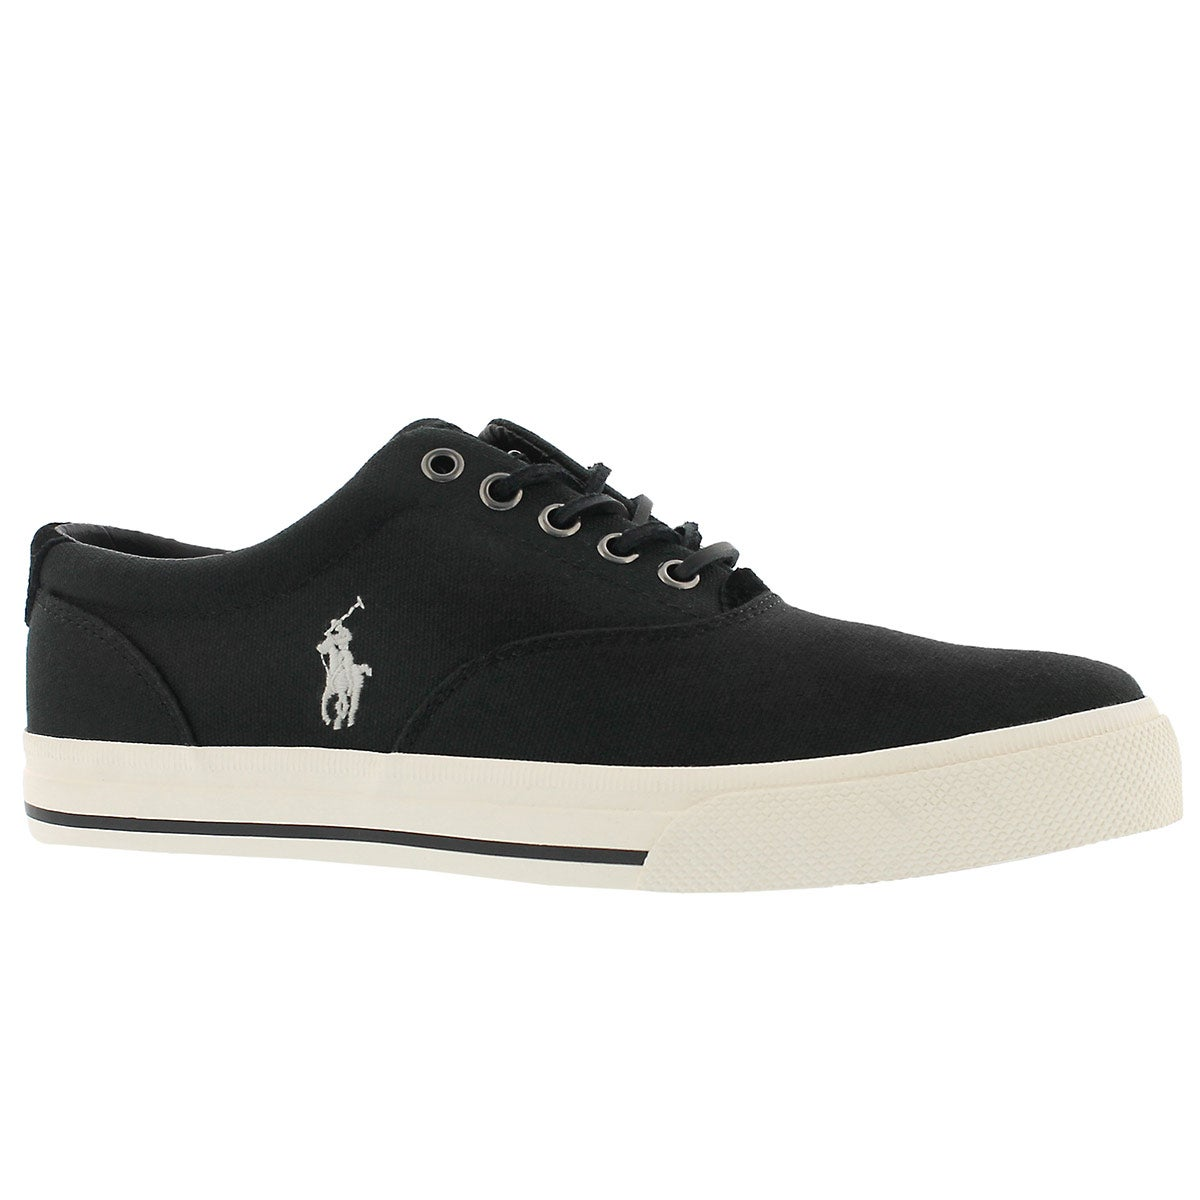 Men's VAUGHN polo black canvas sneakers